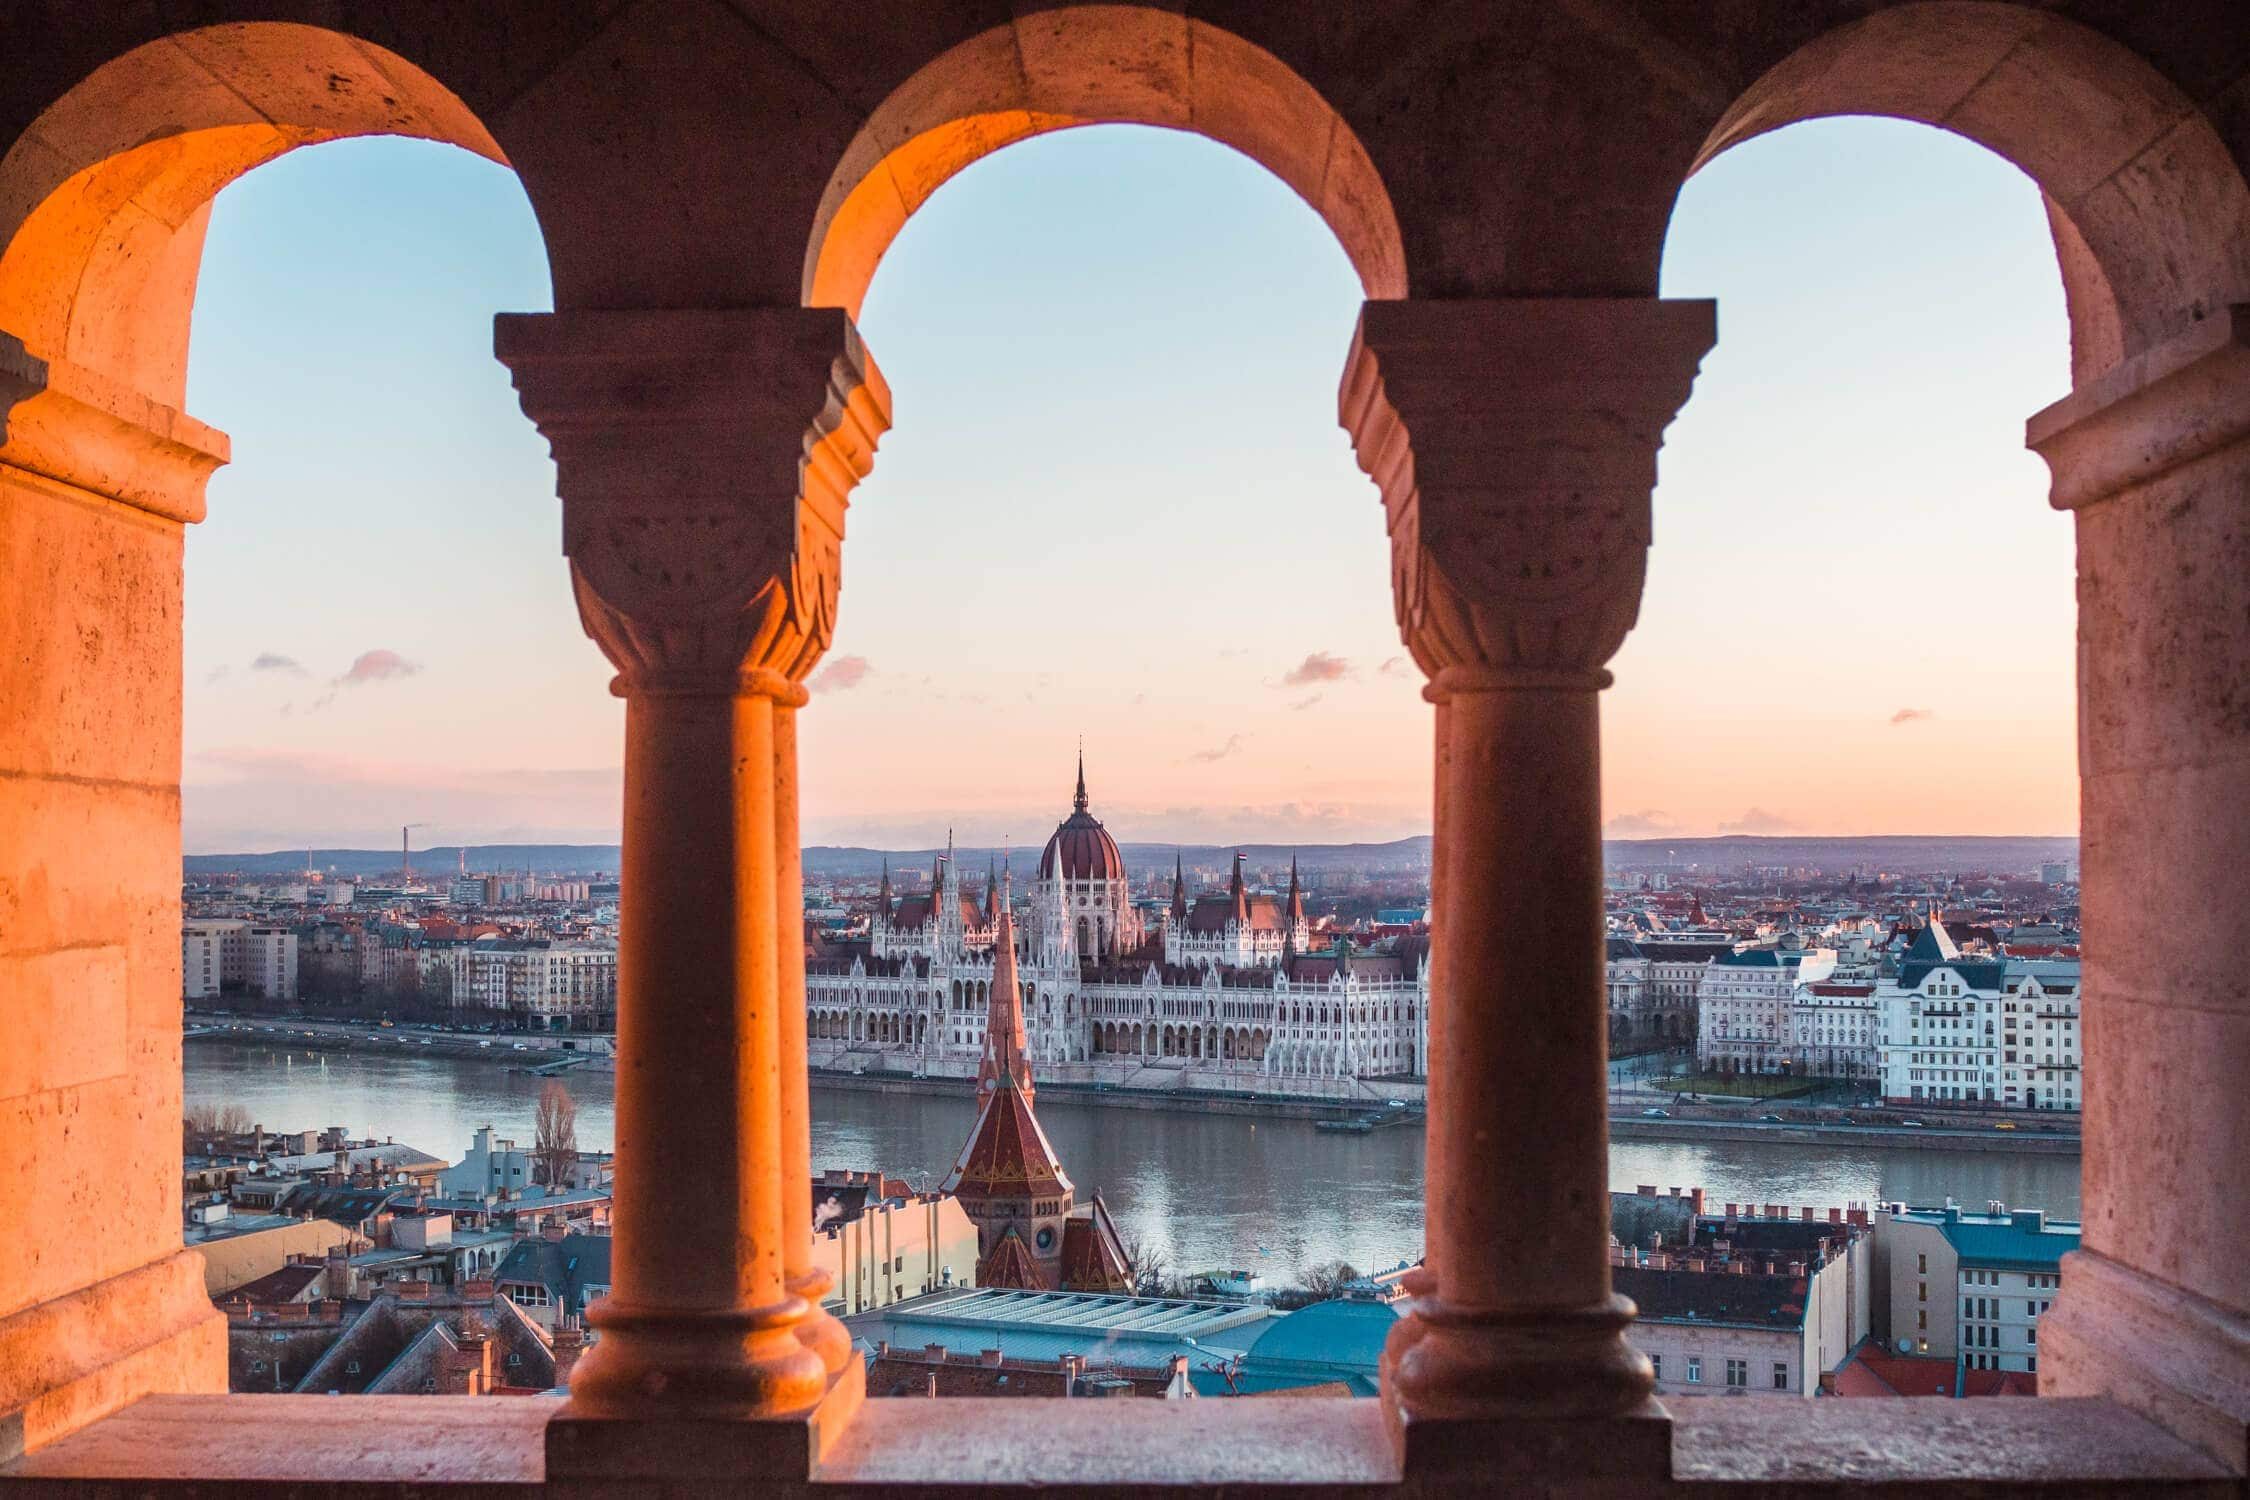 Budapest photography guide: 23 awesome things to see & do